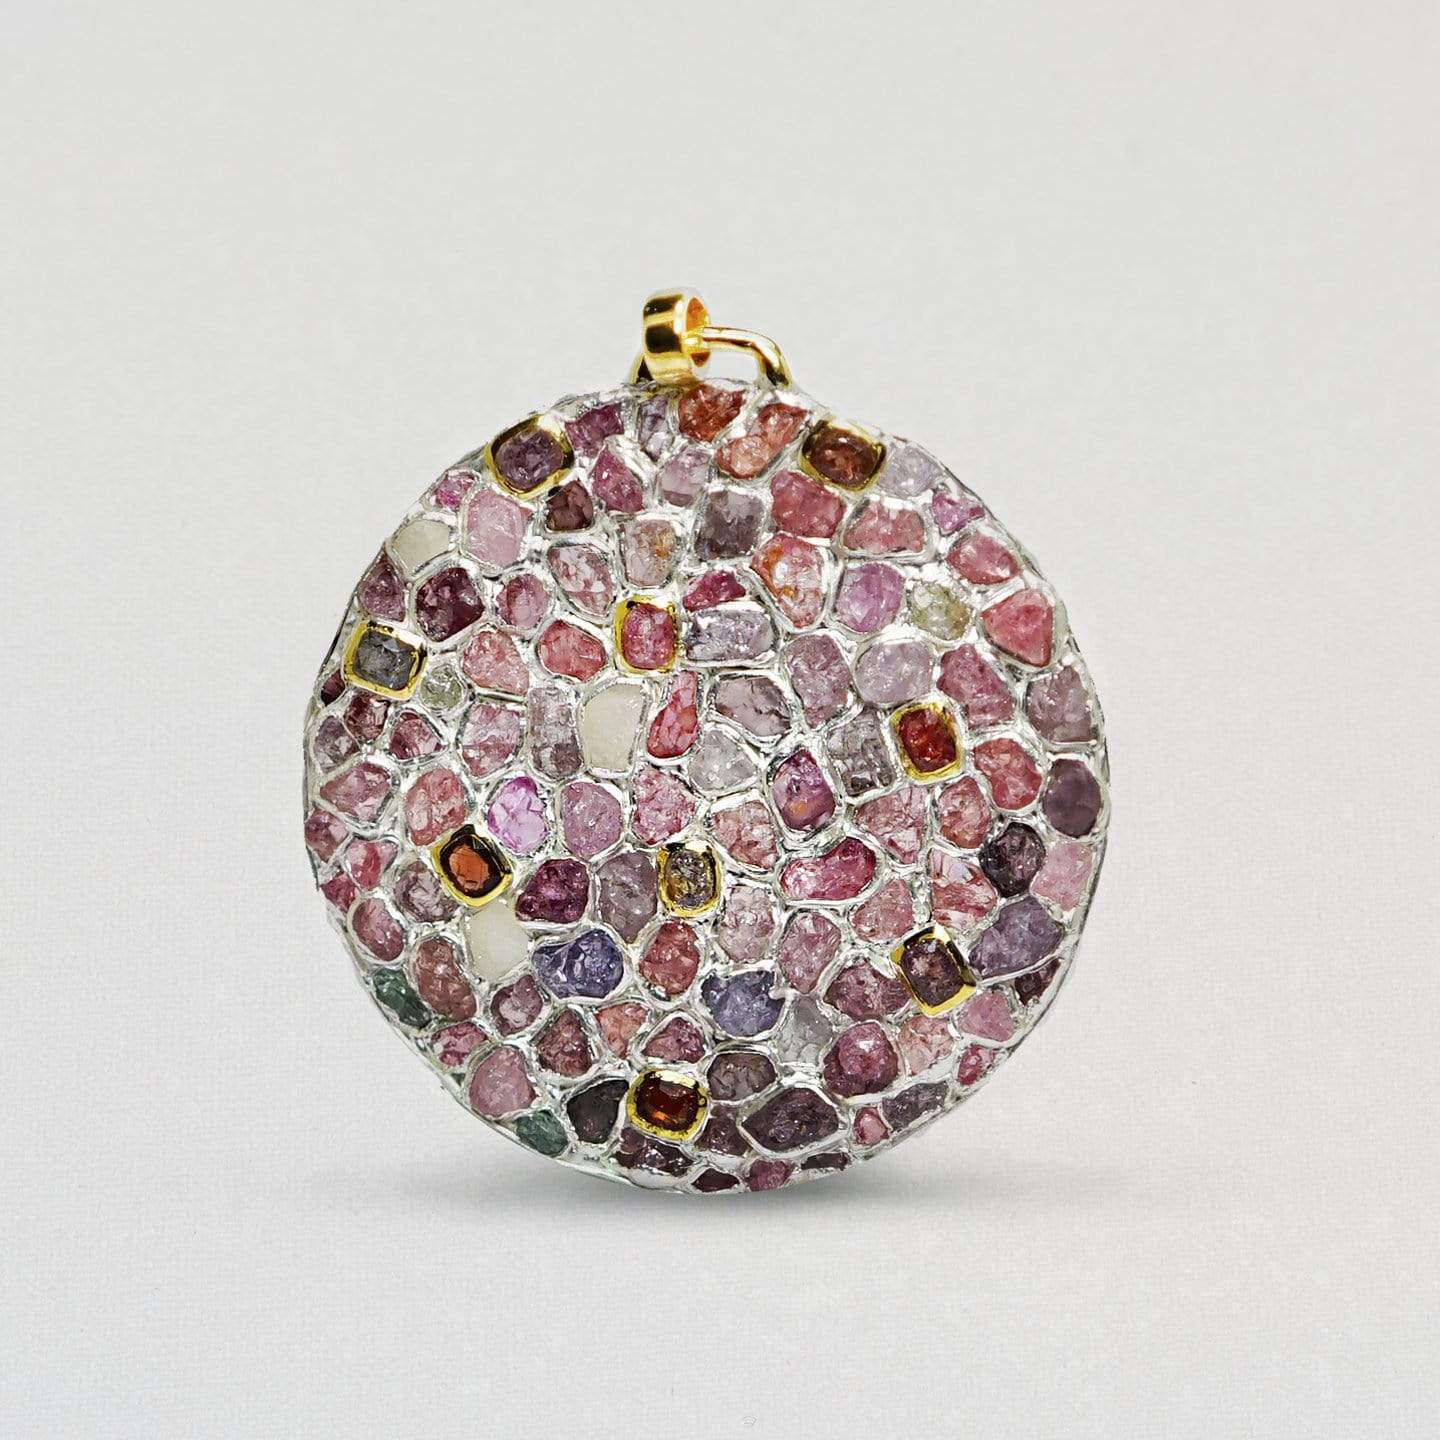 Adonia Pendant, Exclusive, Gold, Rhodium, Ruby, Sapphire, silver, spo-disabled, StoneColor:PastelColor, StoneColor:Pink, Style:Statement, Type:StainedGlass Pendant